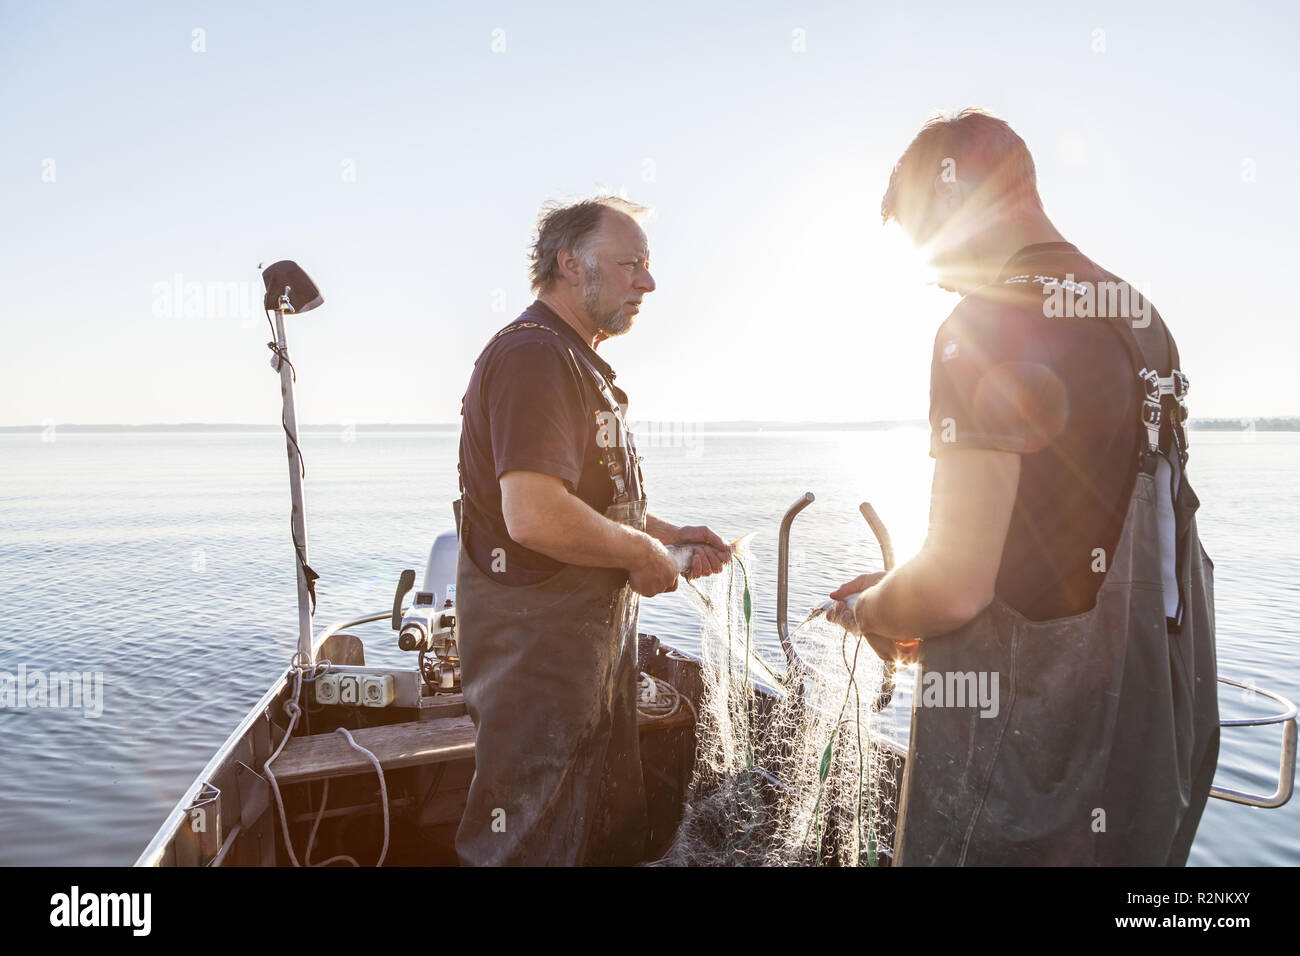 Fishermen Thomas and Florian Lex of the Fraueninsel catching the nets, Frauenchiemsee, Chiemsee, Chiemgau, Upper Bavaria, Bavaria, southern Germany, Germany, Europe - Stock Image